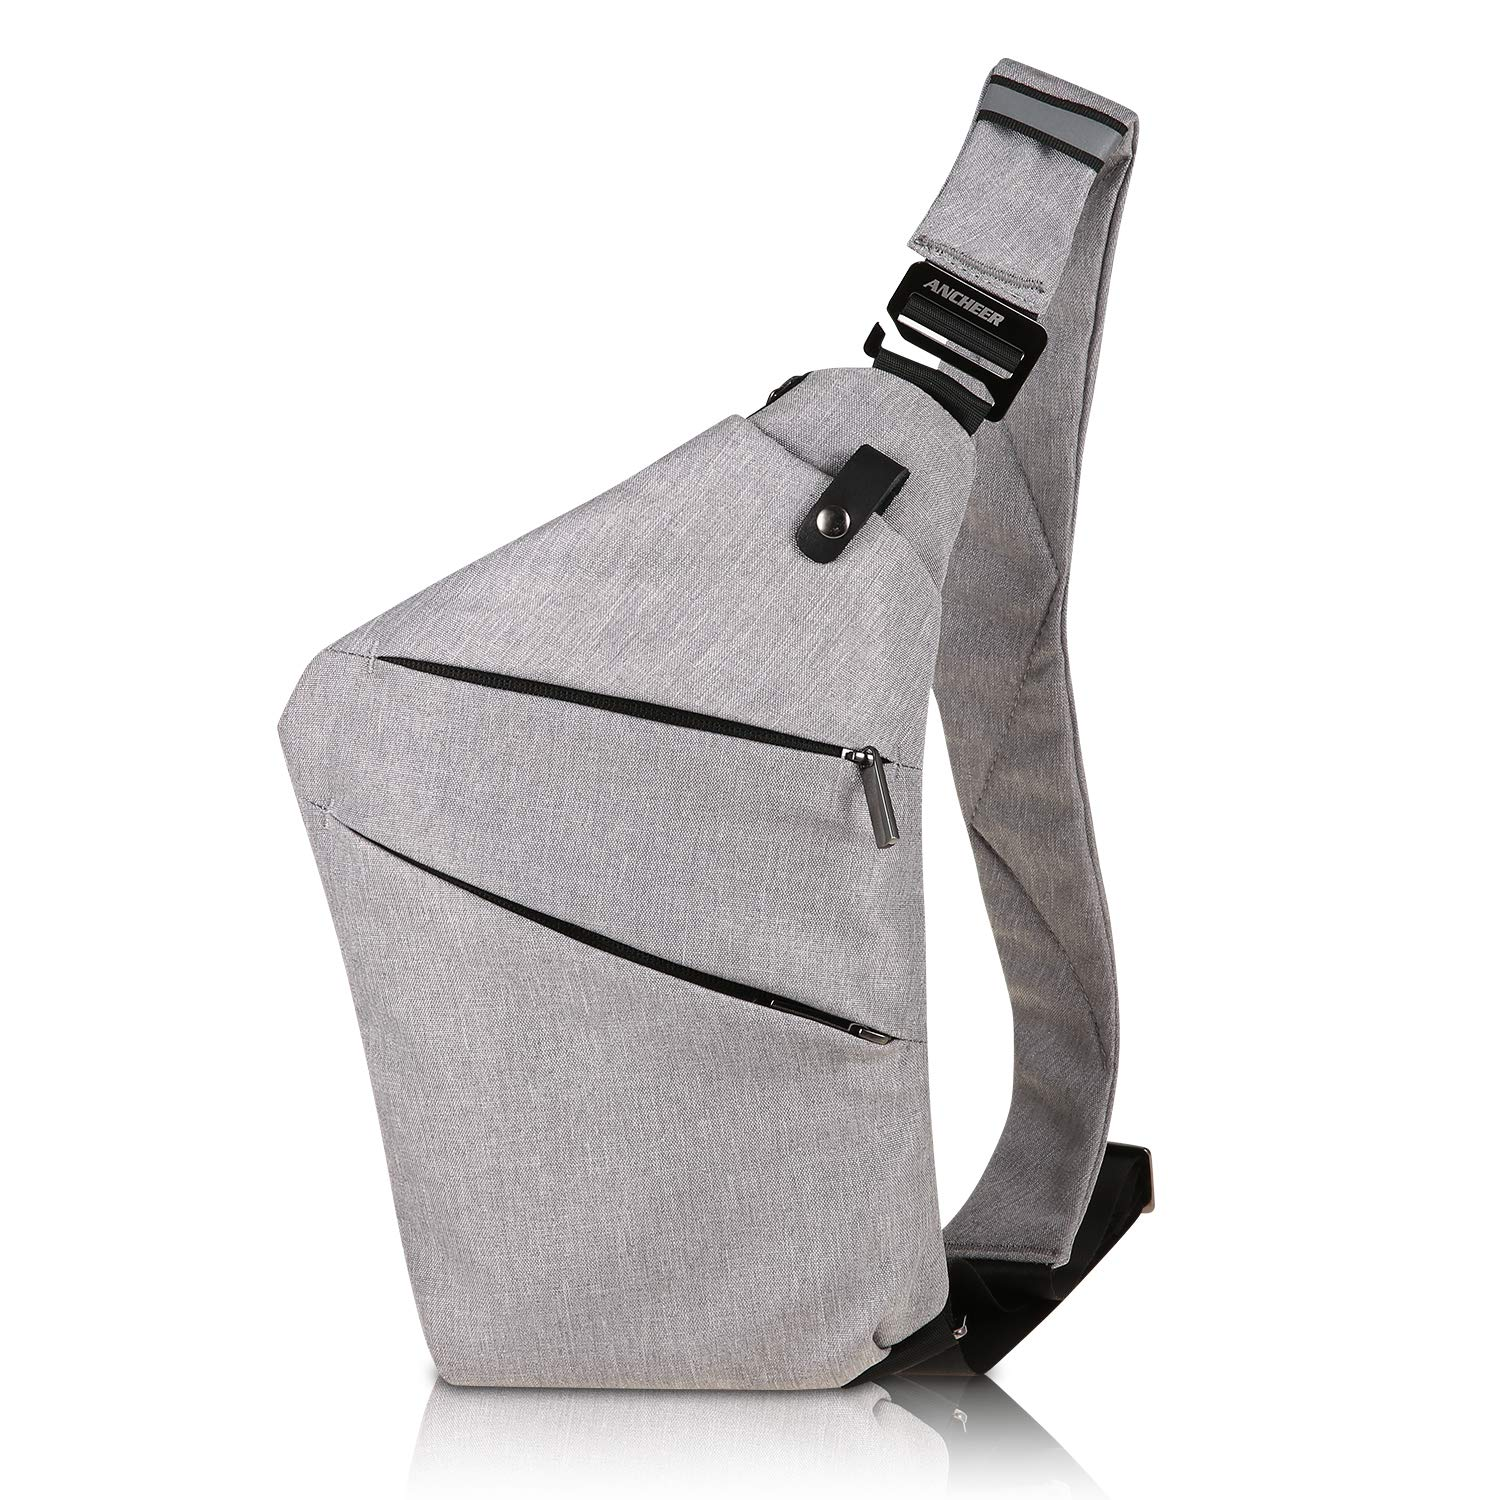 ANCHEER Canvas Sling Chest Bag, Small Unisex Vintage Messenger Crossbody Backpack for Traveling School Dating Shopping & Outdoor Activities (Sling Chest Bag_Gray)